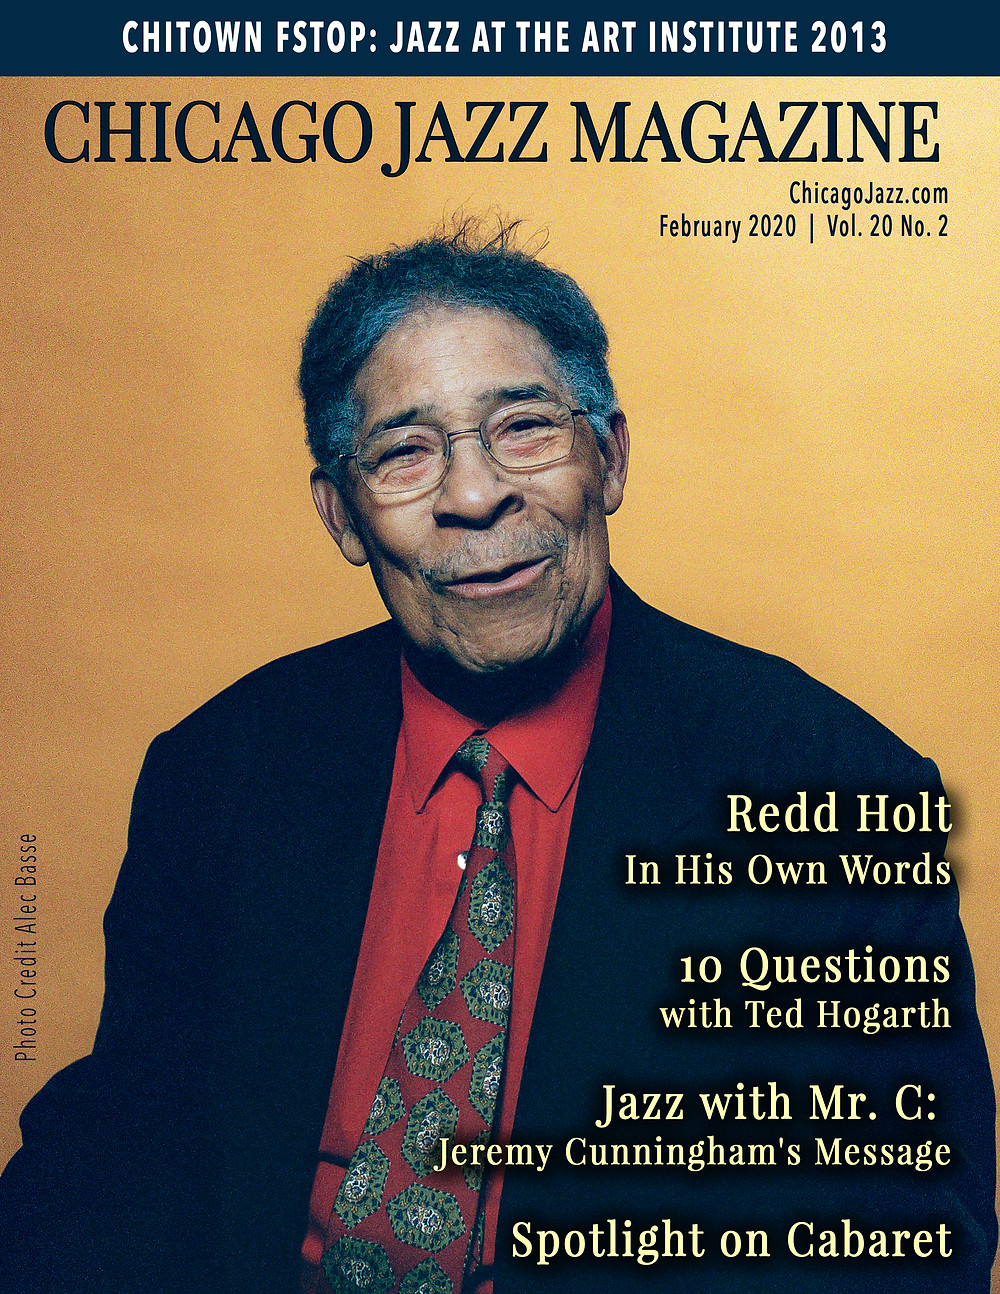 Chicago Jazz Magazine Cover with Redd Holt